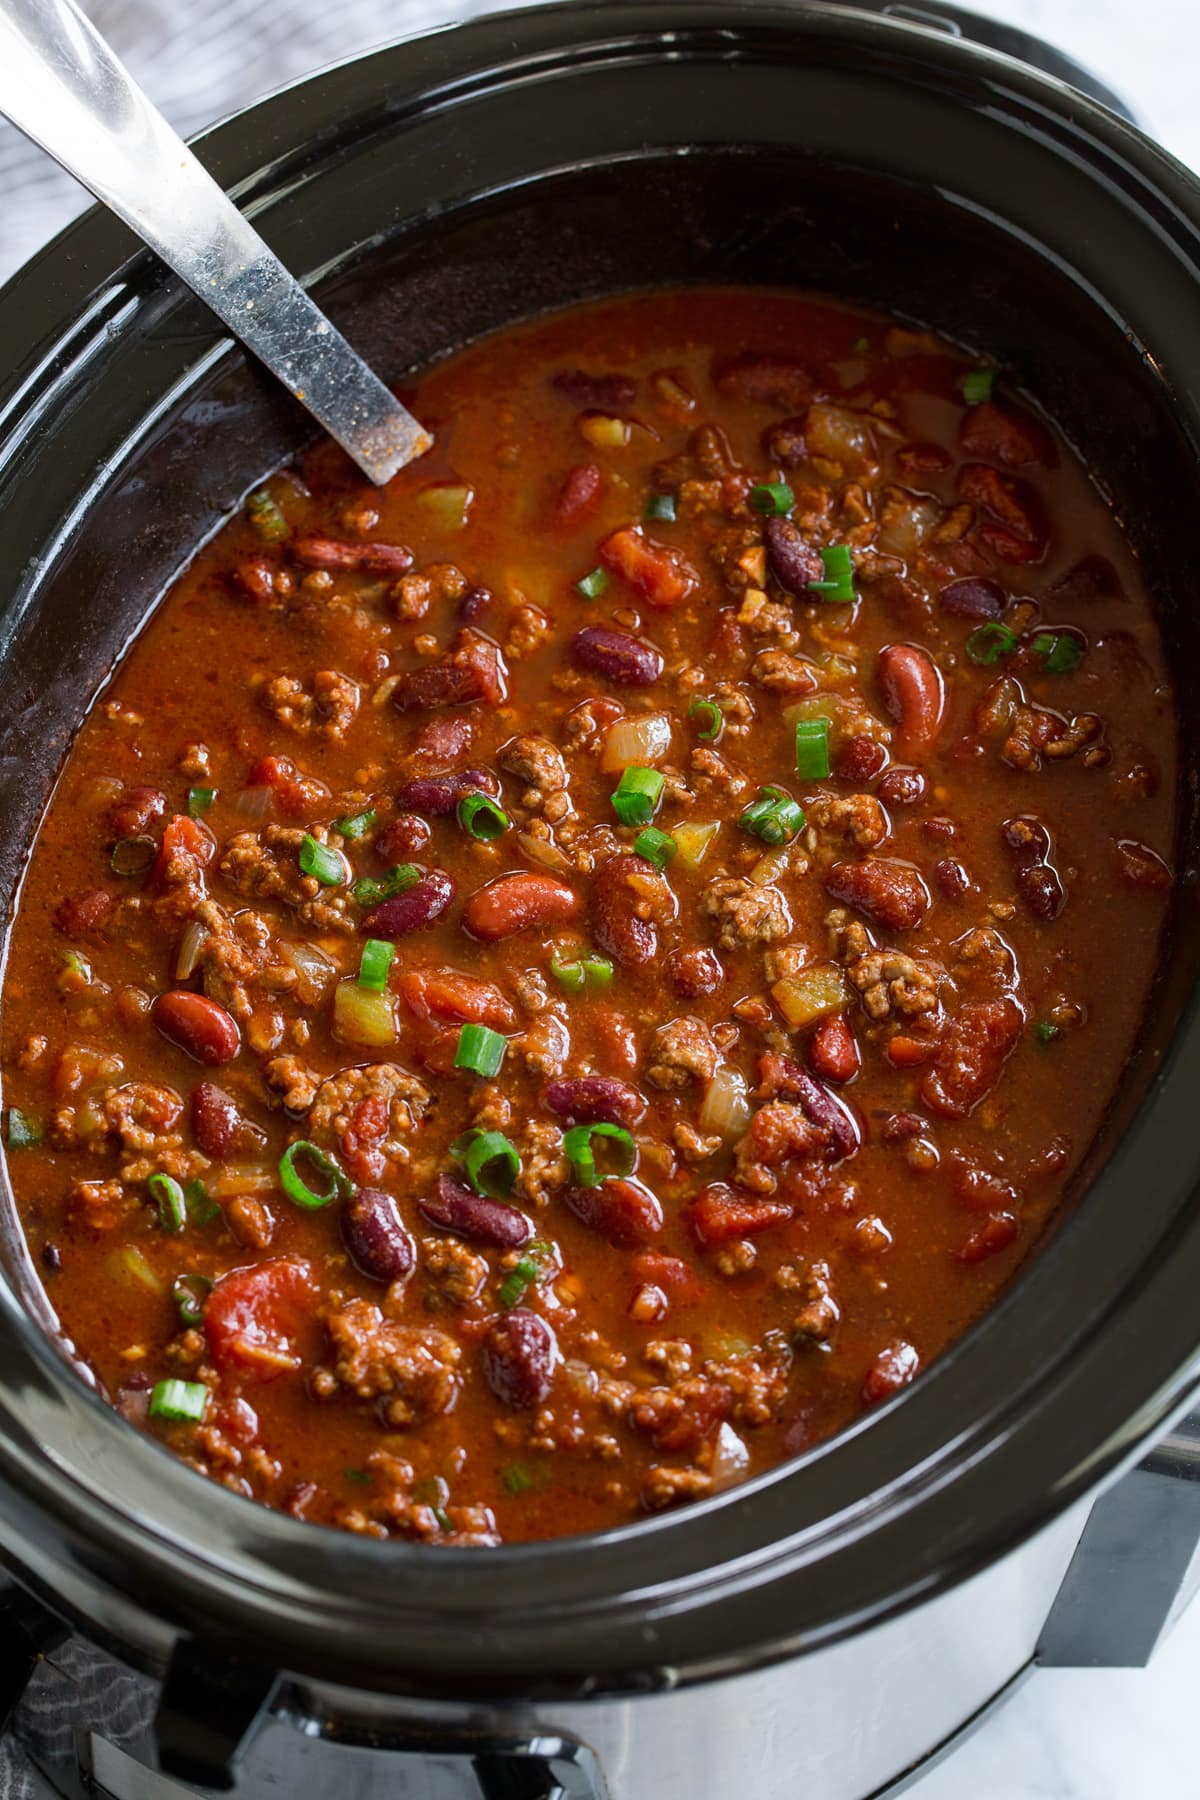 Large batch of chili in a Slow Cooker.